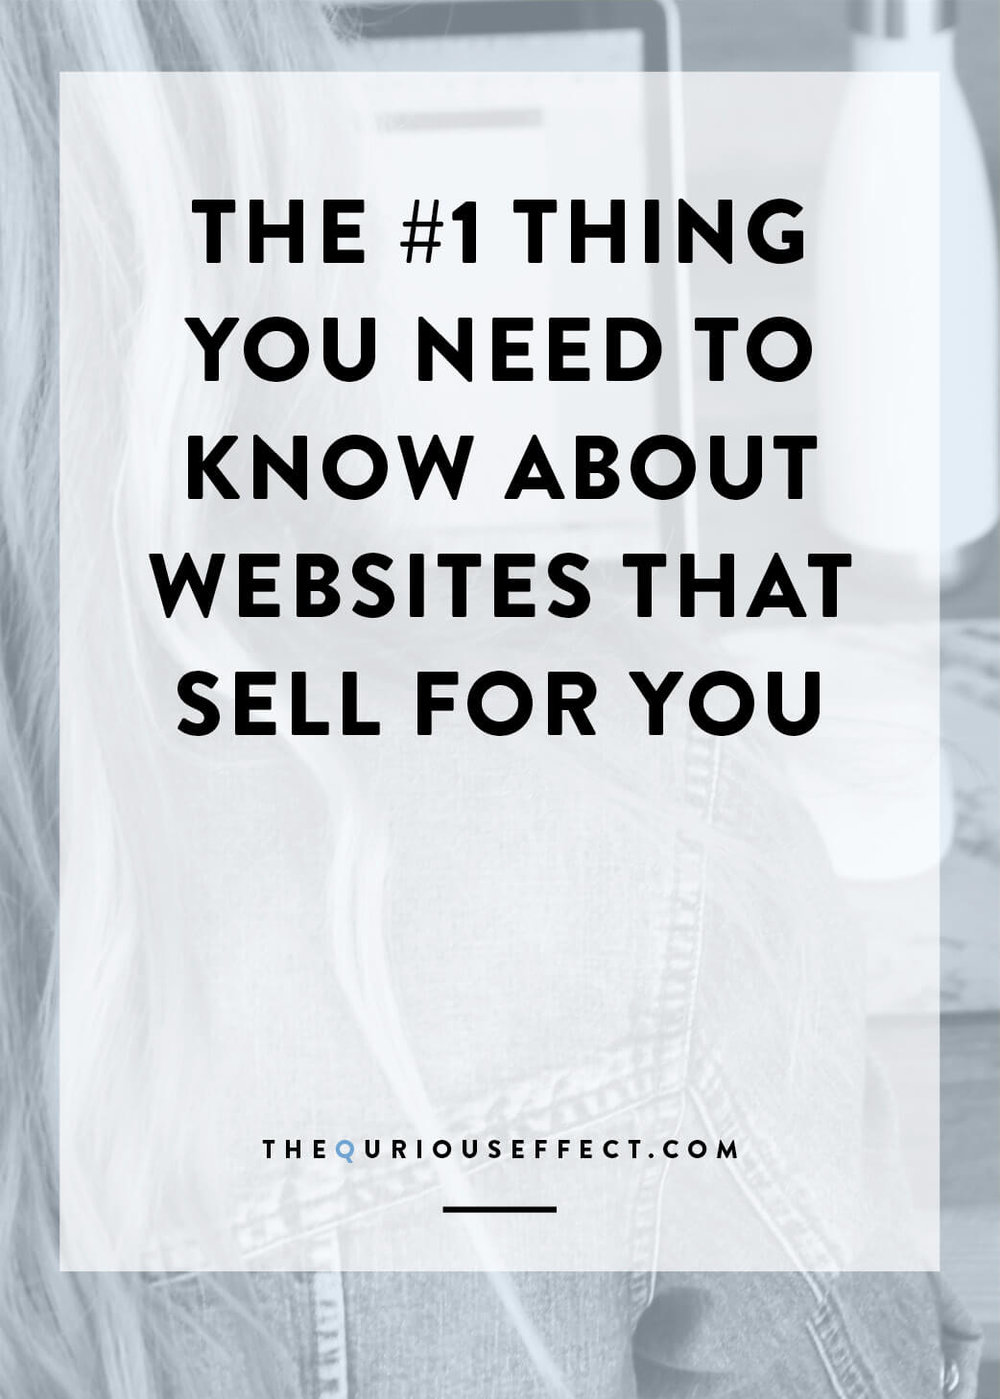 The #1 Thing You Need to Know About Websites that Sell for You by The Qurious Effect. A squarespace website design firm.